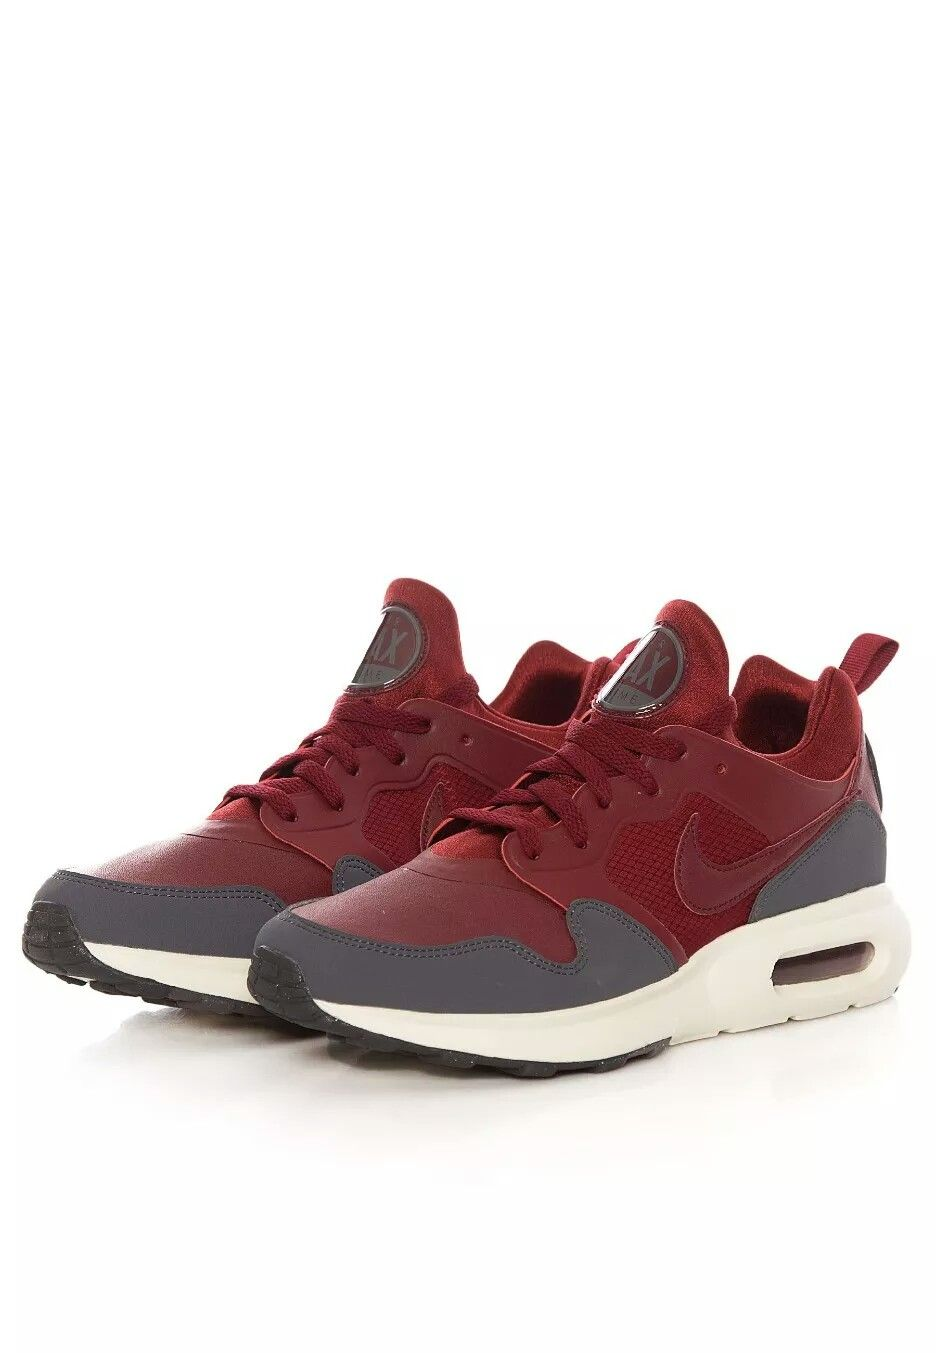 big sale a544d 9a1a7 NIKE AIR MAX PRIME SL Color TEAM RED  TEAM REDDARK GREY Size 10.5 Women s  Size 9  75+(Free Shipping)